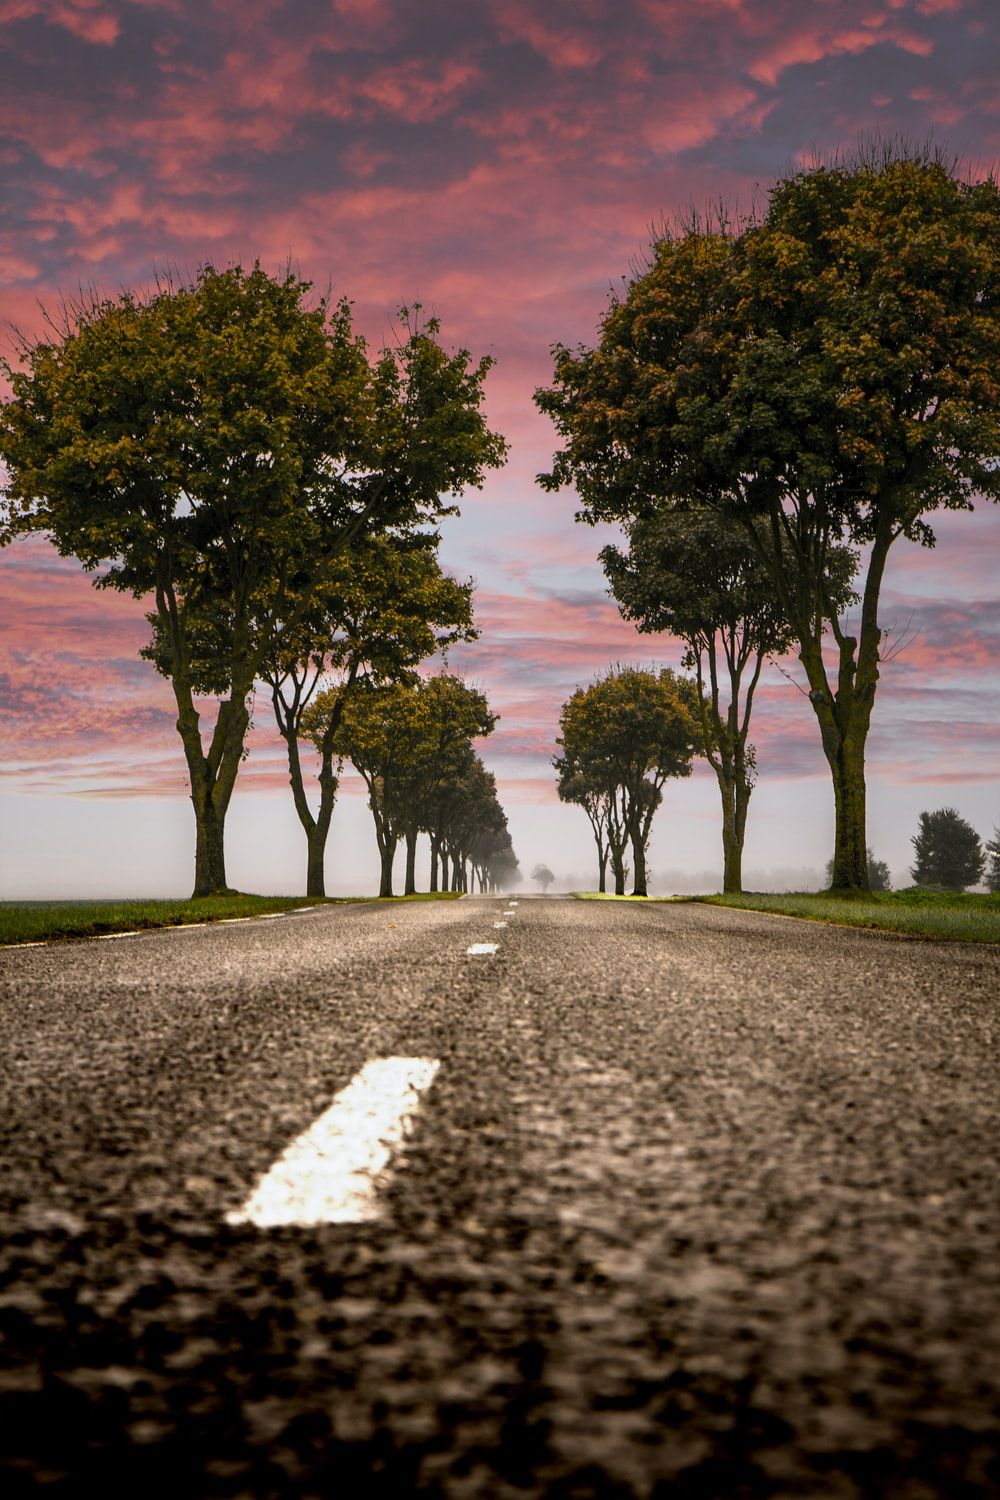 low angle photography of asphalt road